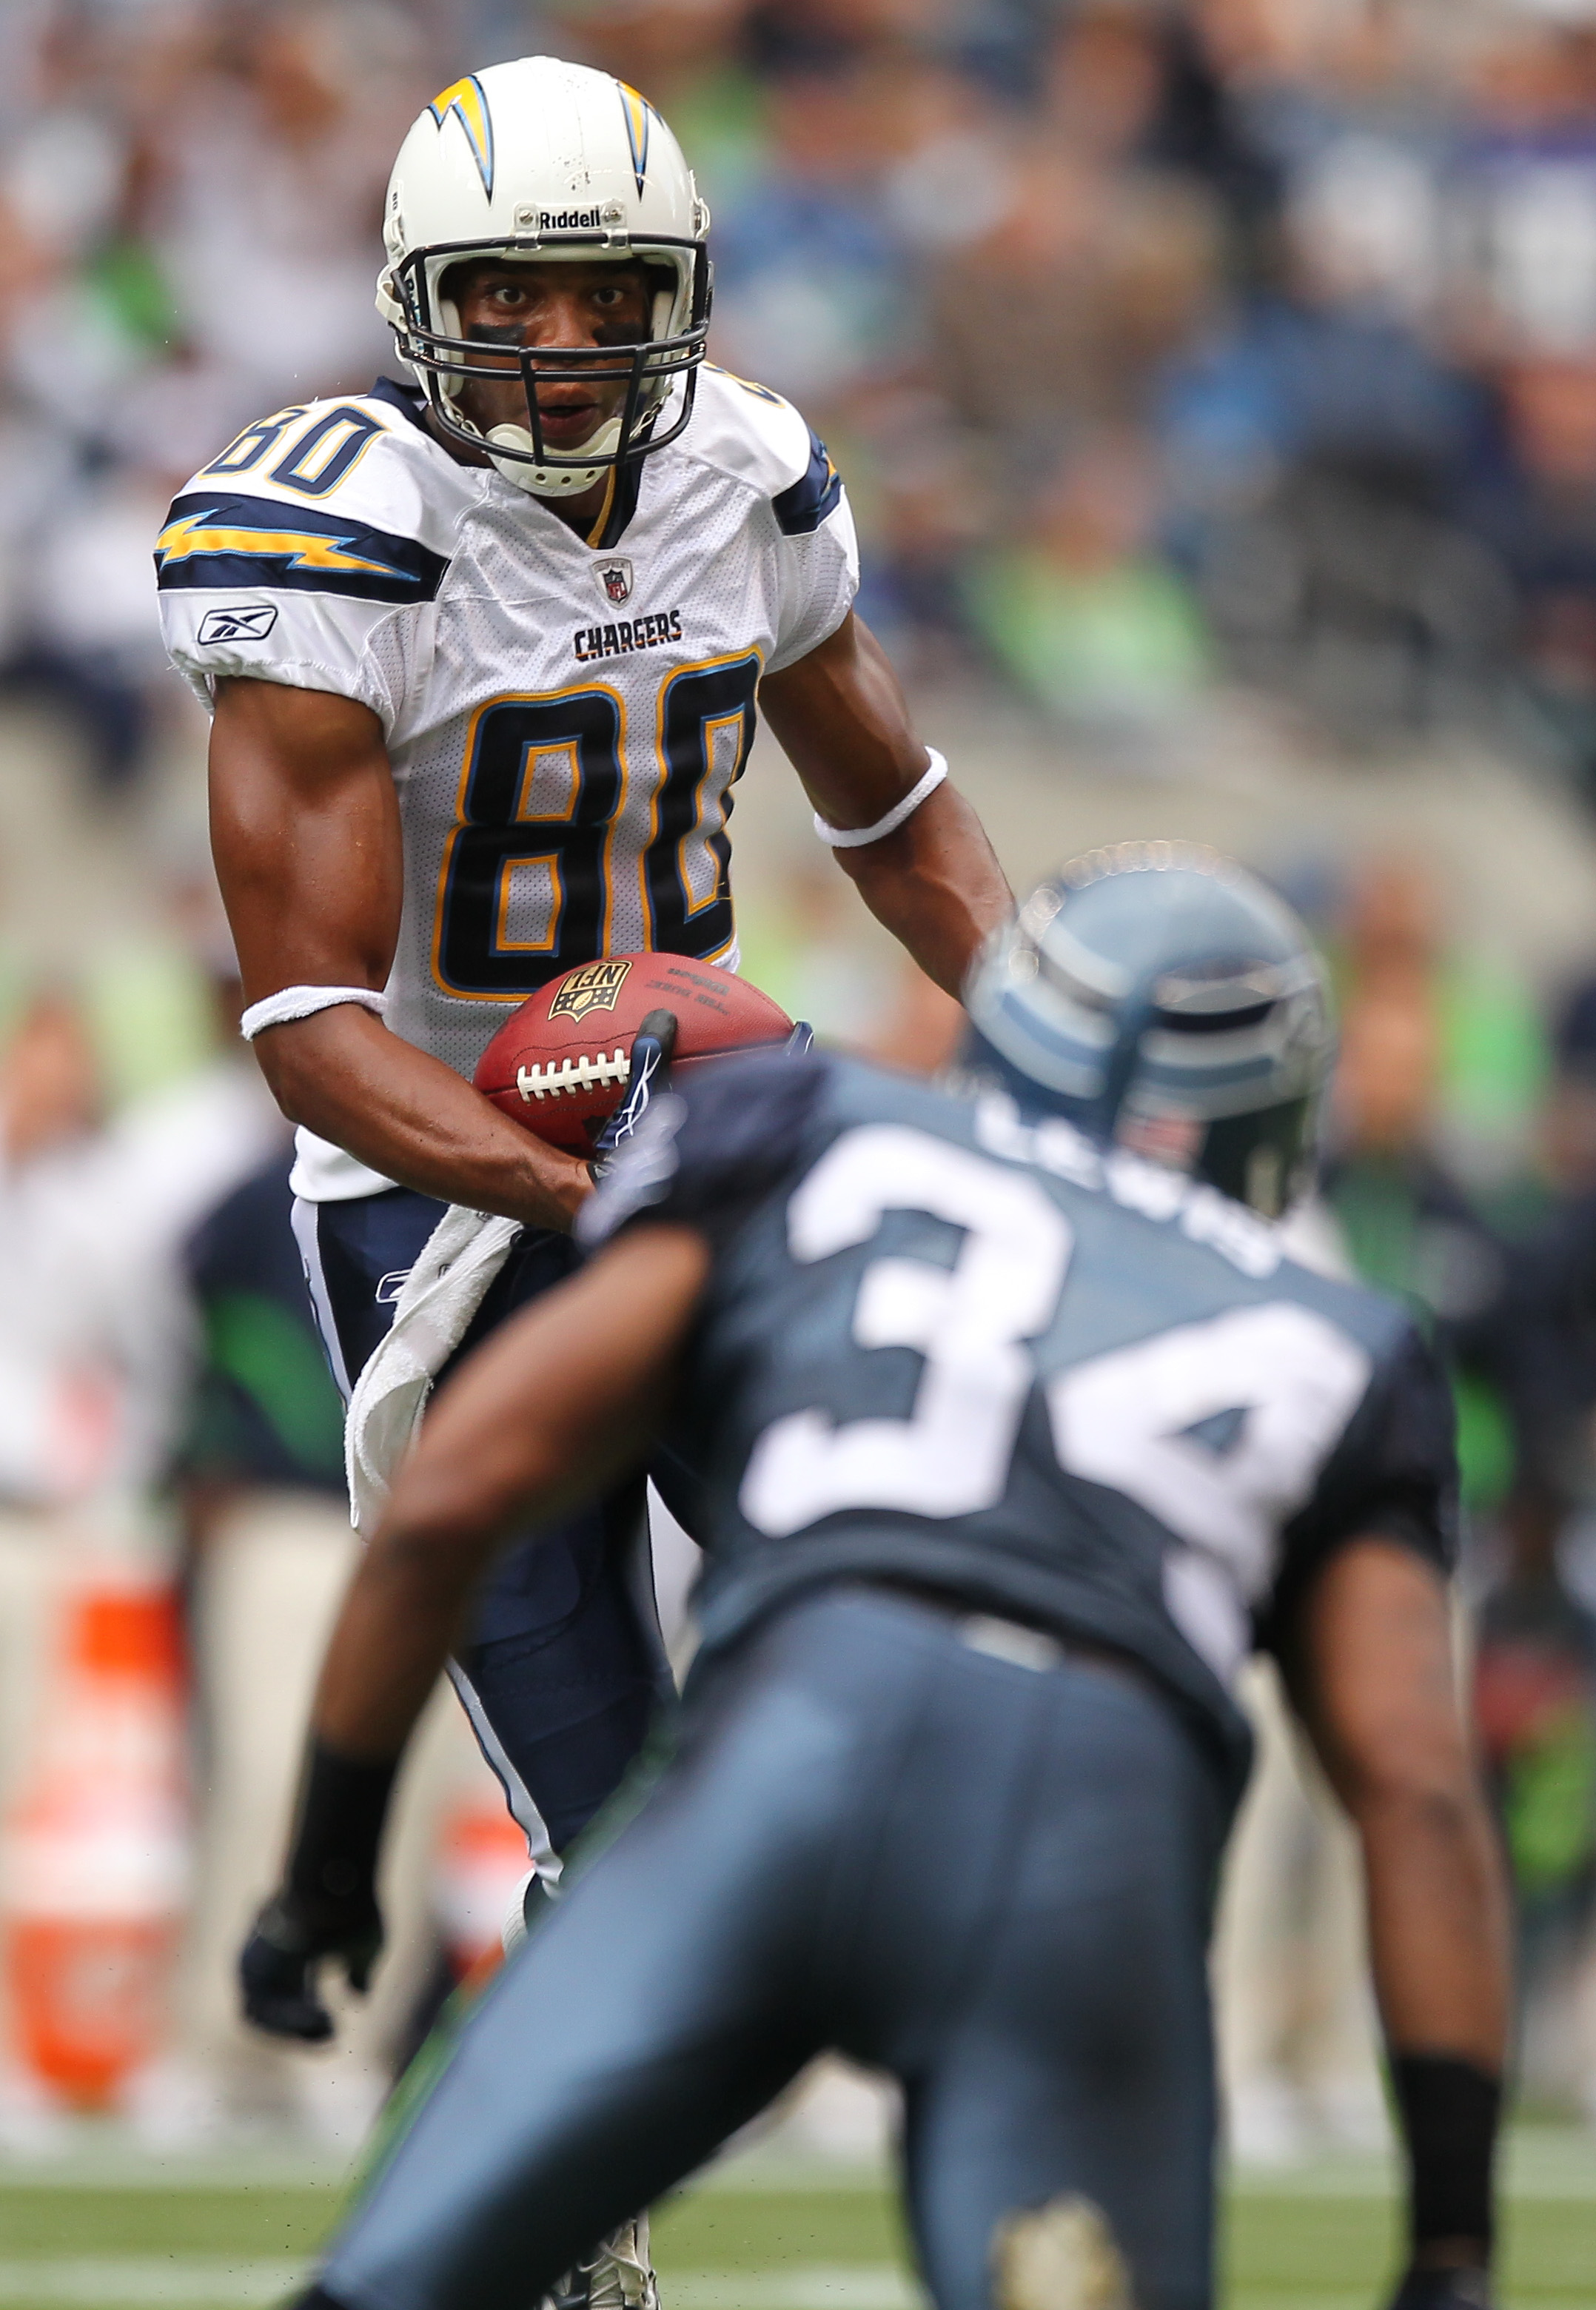 SEATTLE - SEPTEMBER 26:  Wide receiver Malcom Floyd #80 of the San Diego Chargers rushes against Roy Lewis #34 of the Seattle Seahawks at Qwest Field on September 26, 2010 in Seattle, Washington. (Photo by Otto Greule Jr/Getty Images)